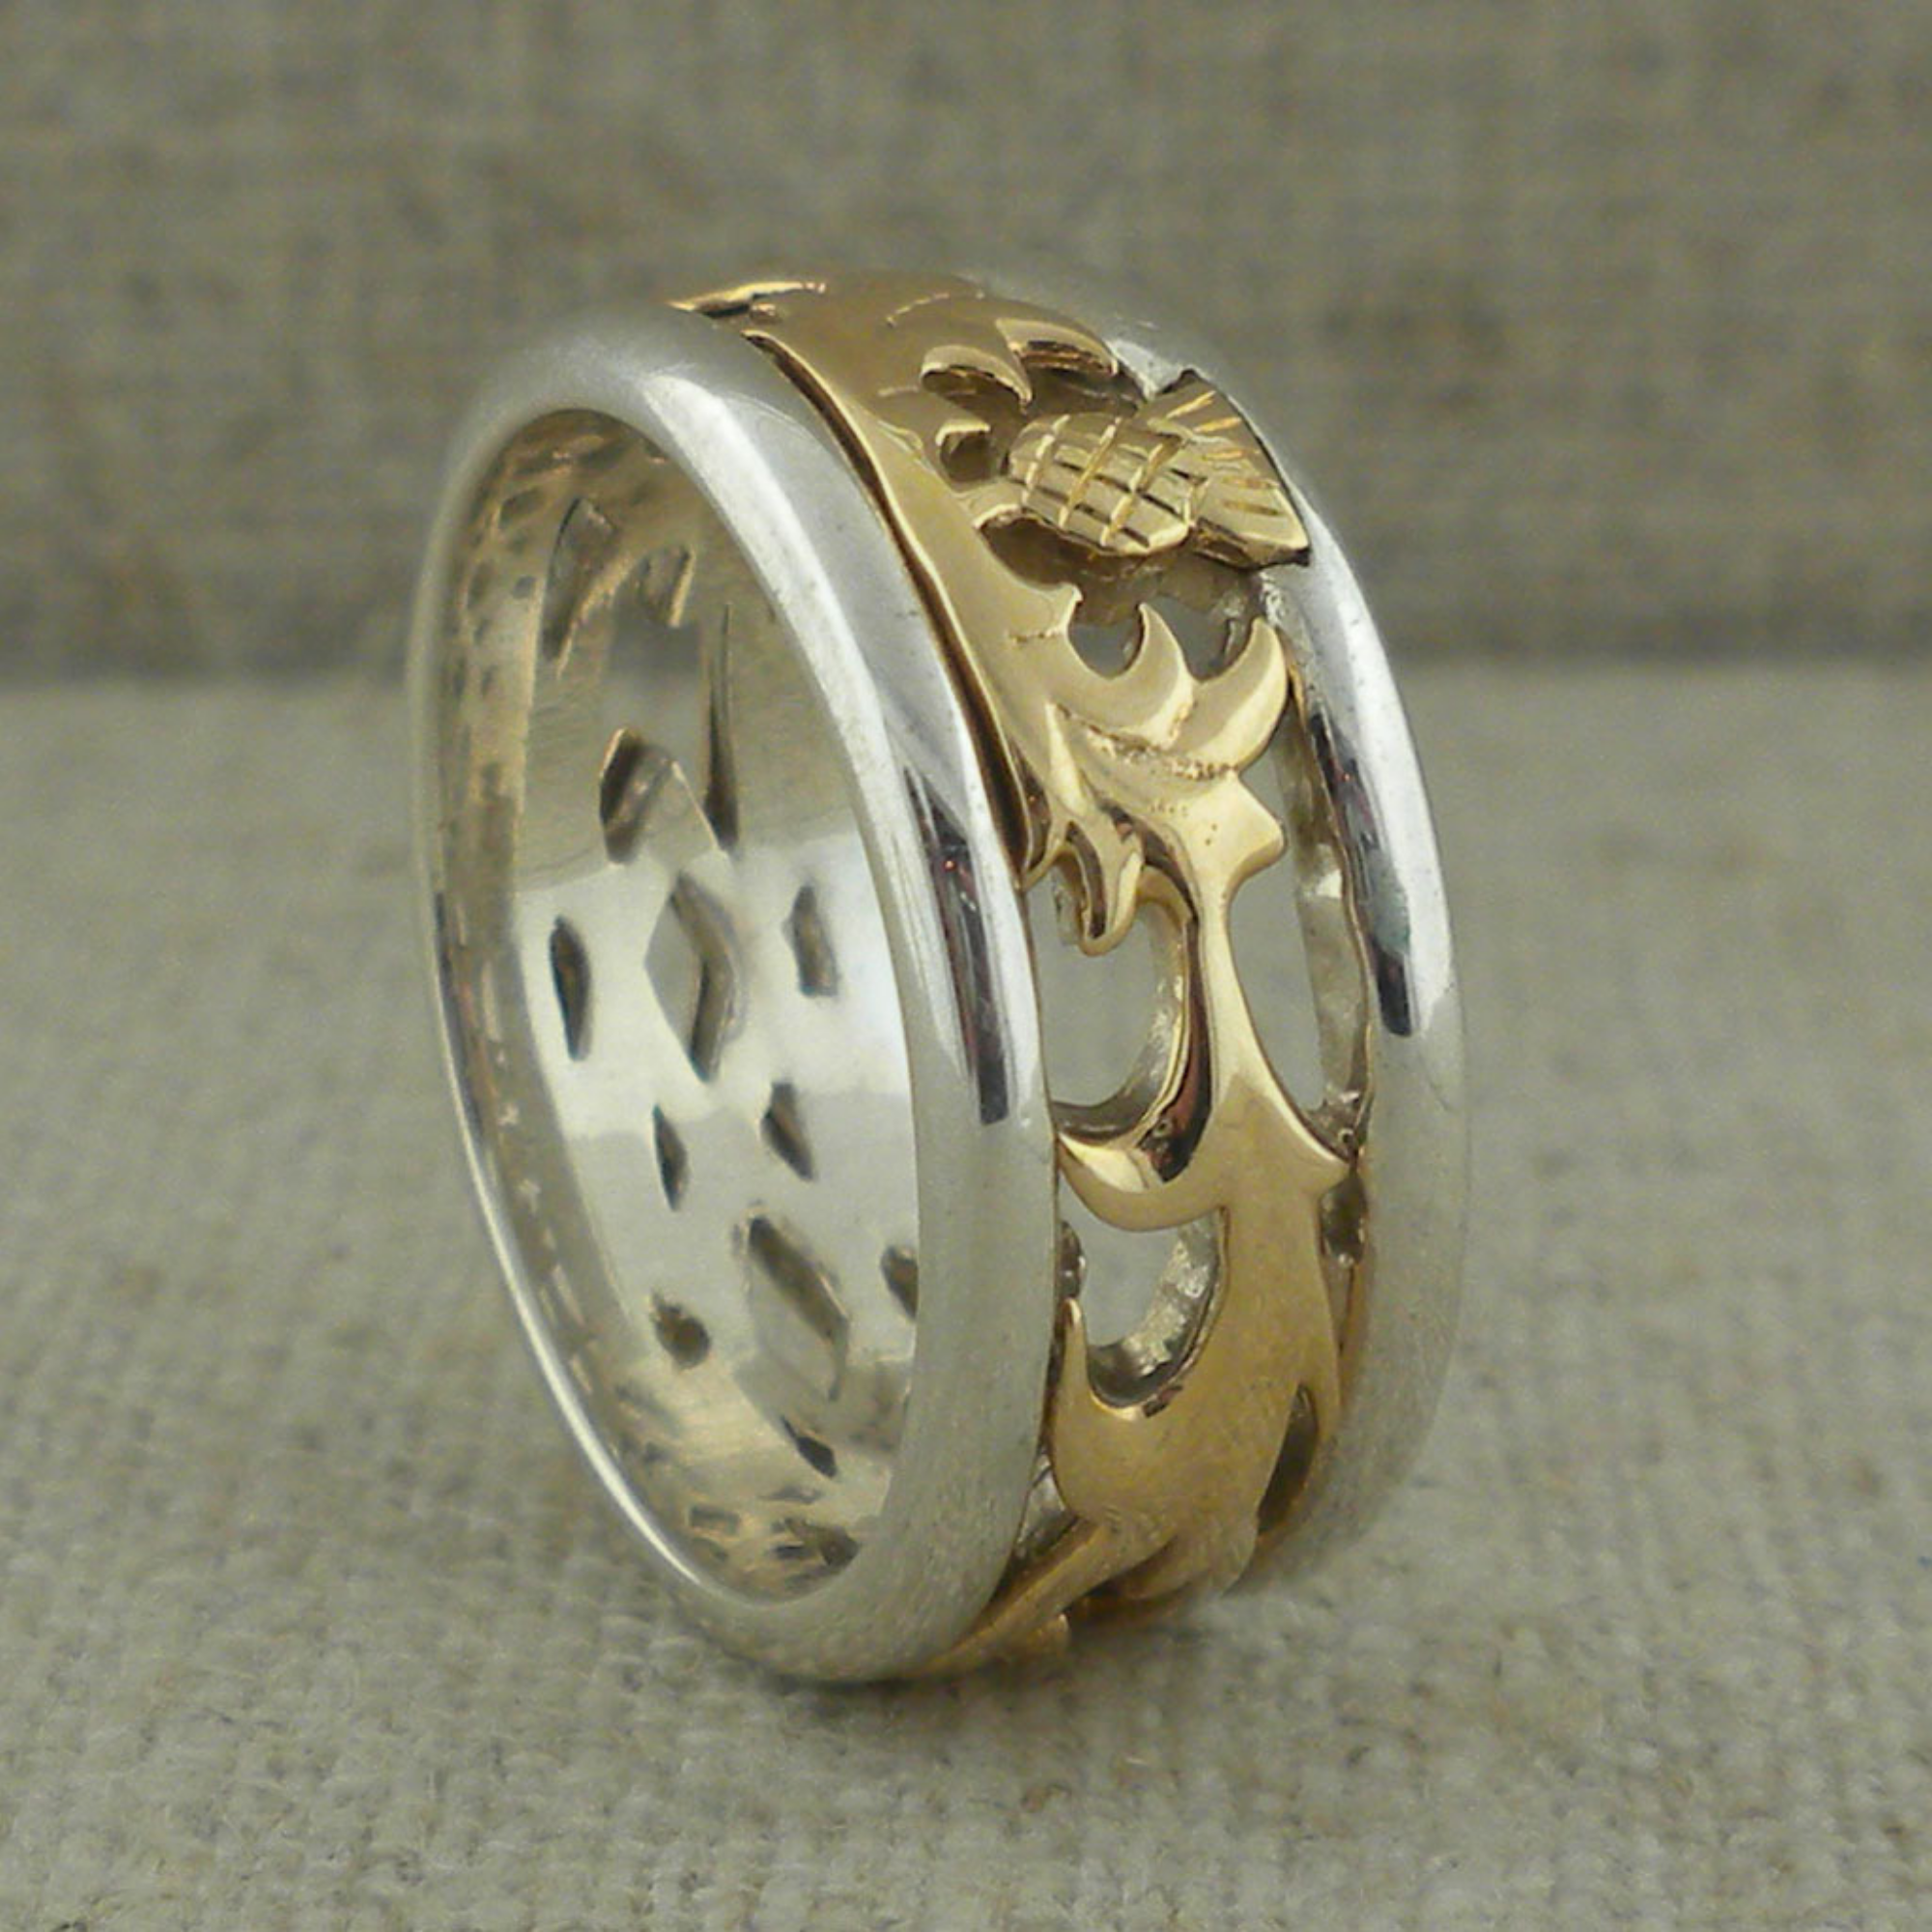 Scottish Thistle Wedding Ring by Keith Jack